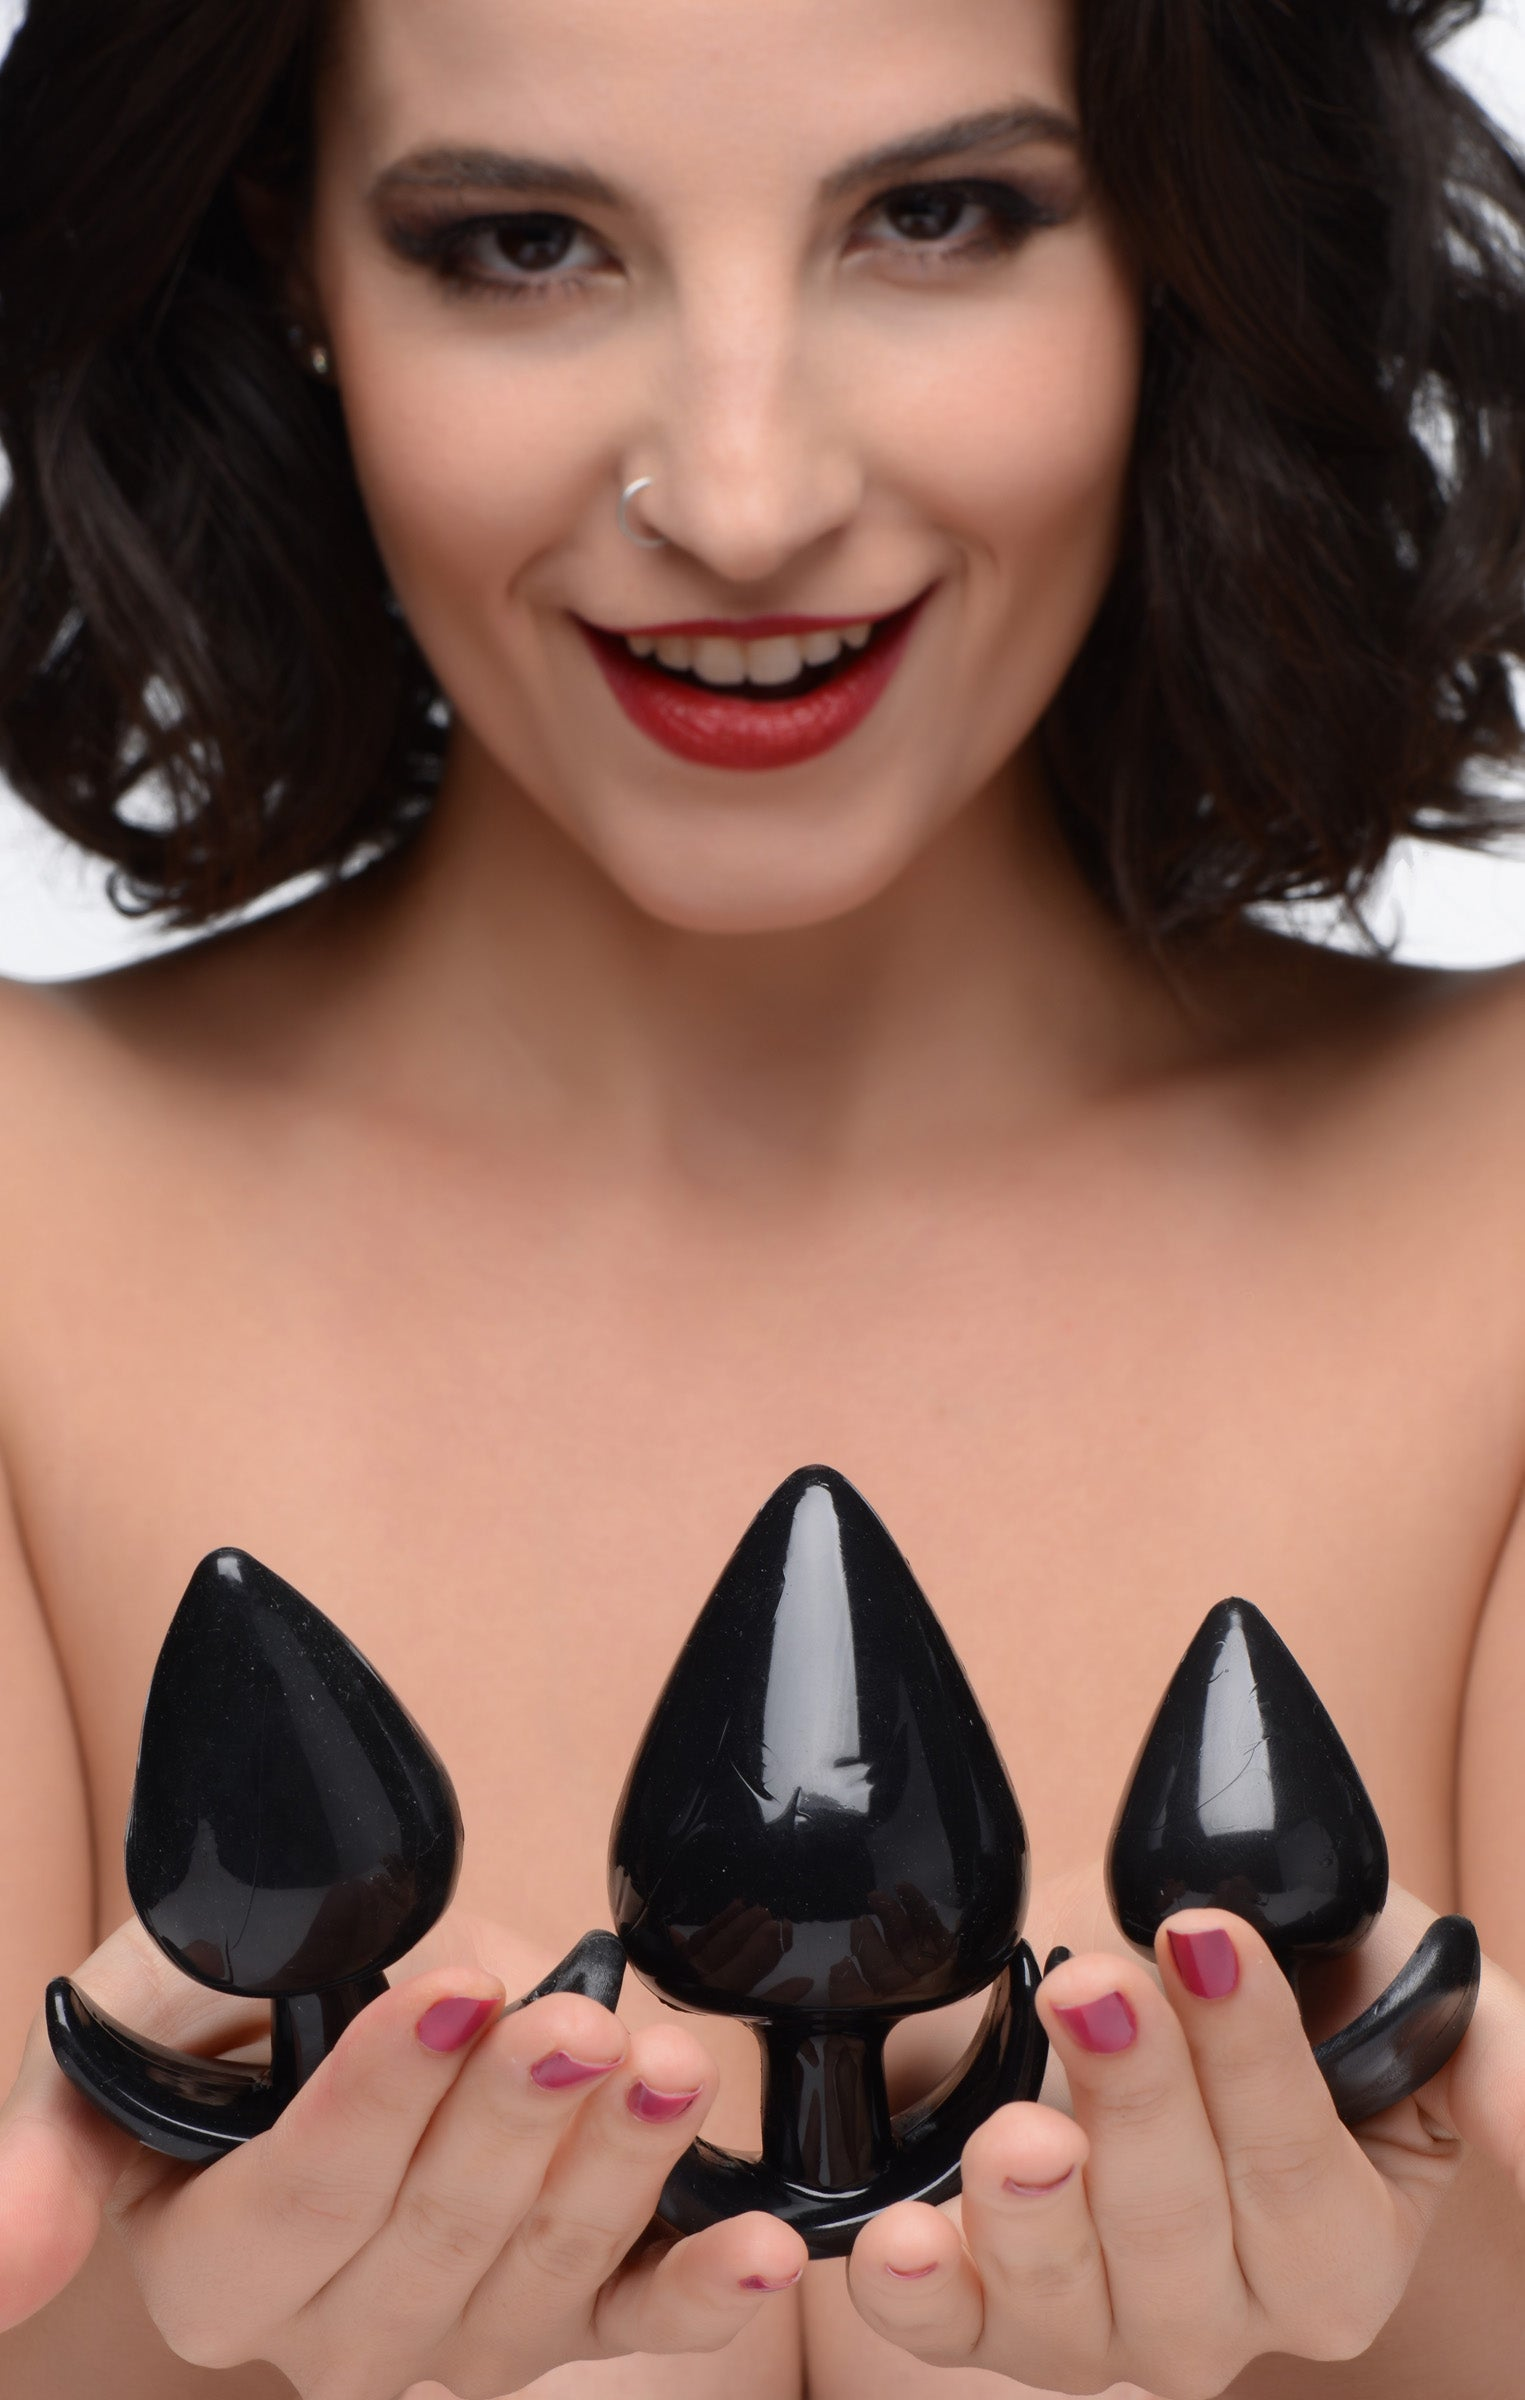 Triple Spades 3 Piece Anal Plug Set